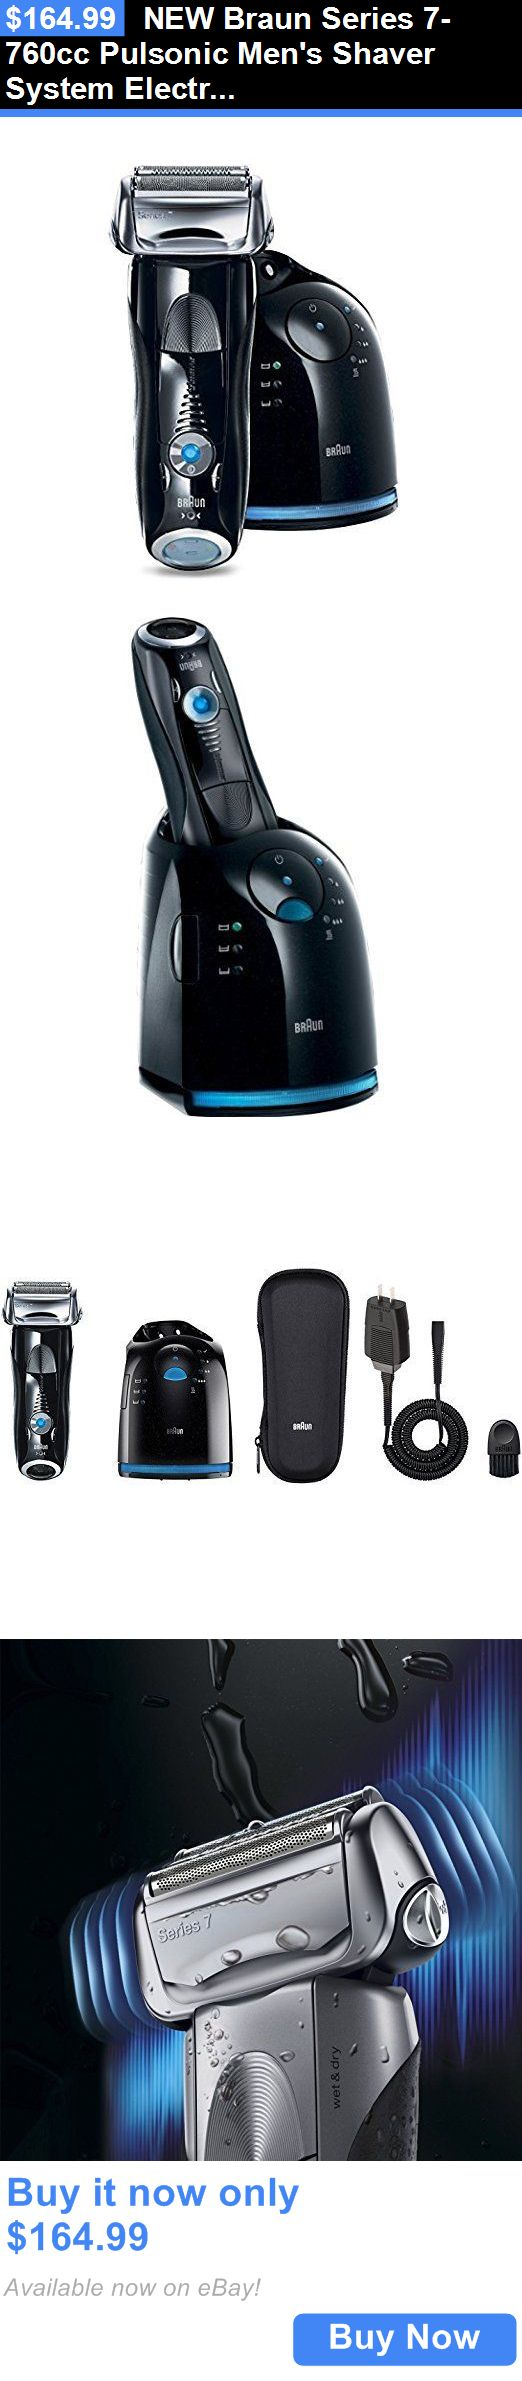 Mens Shavers: New Braun Series 7-760Cc Pulsonic Mens Shaver System Electric Shaving Razor BUY IT NOW ONLY: $164.99